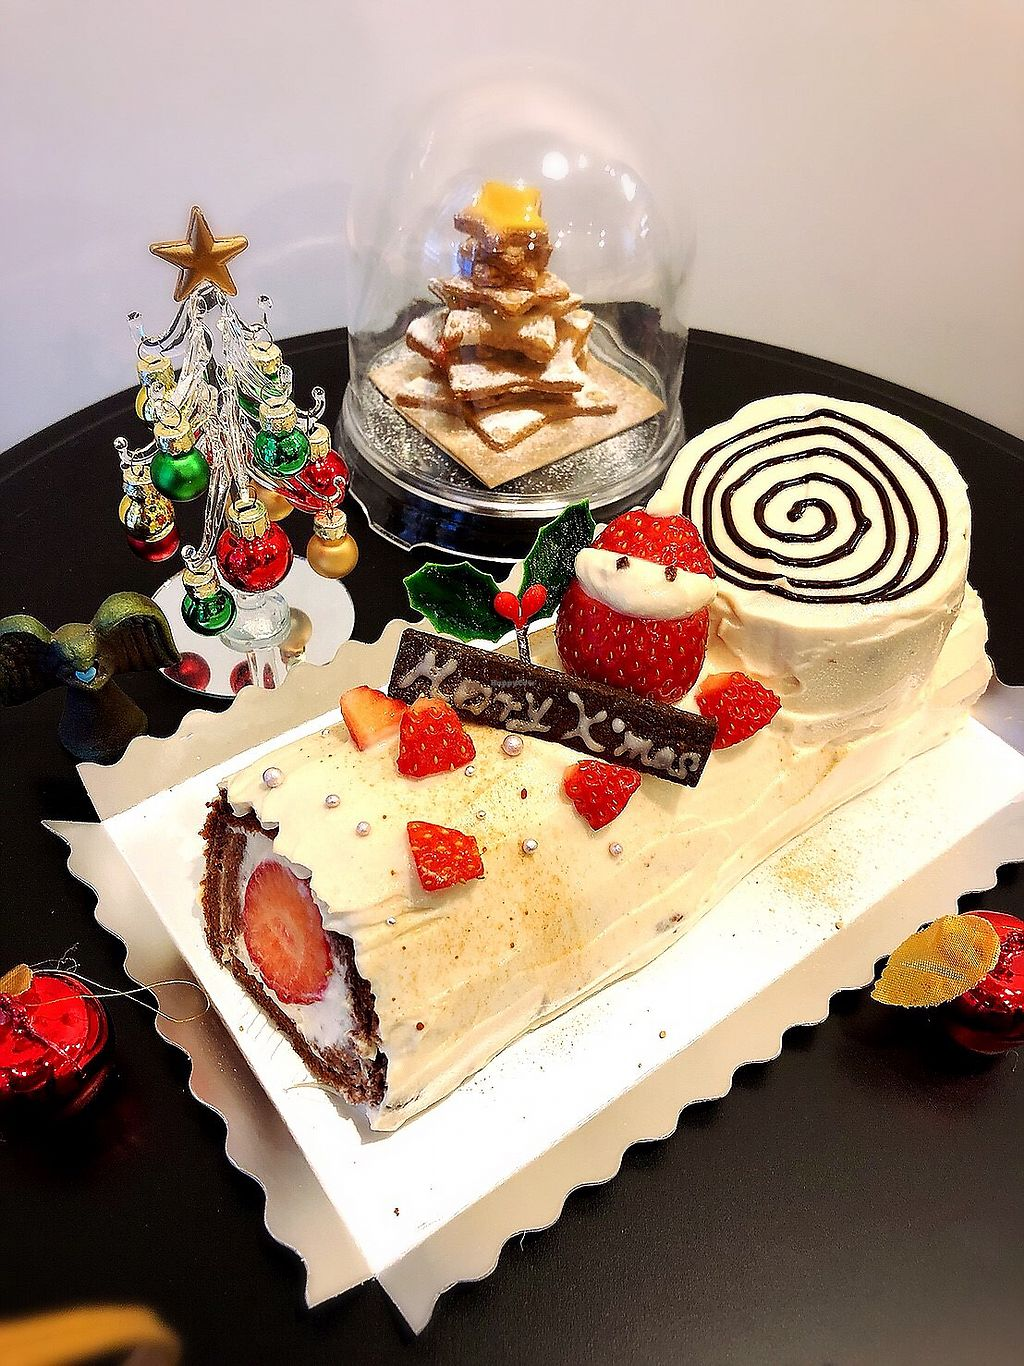 """Photo of Vegan Cafe and Bar Karons  by <a href=""""/members/profile/KanokoNozaki"""">KanokoNozaki</a> <br/>予約販売  we are accepting reservations for Christmas cake <br/> December 14, 2017  - <a href='/contact/abuse/image/74323/335426'>Report</a>"""